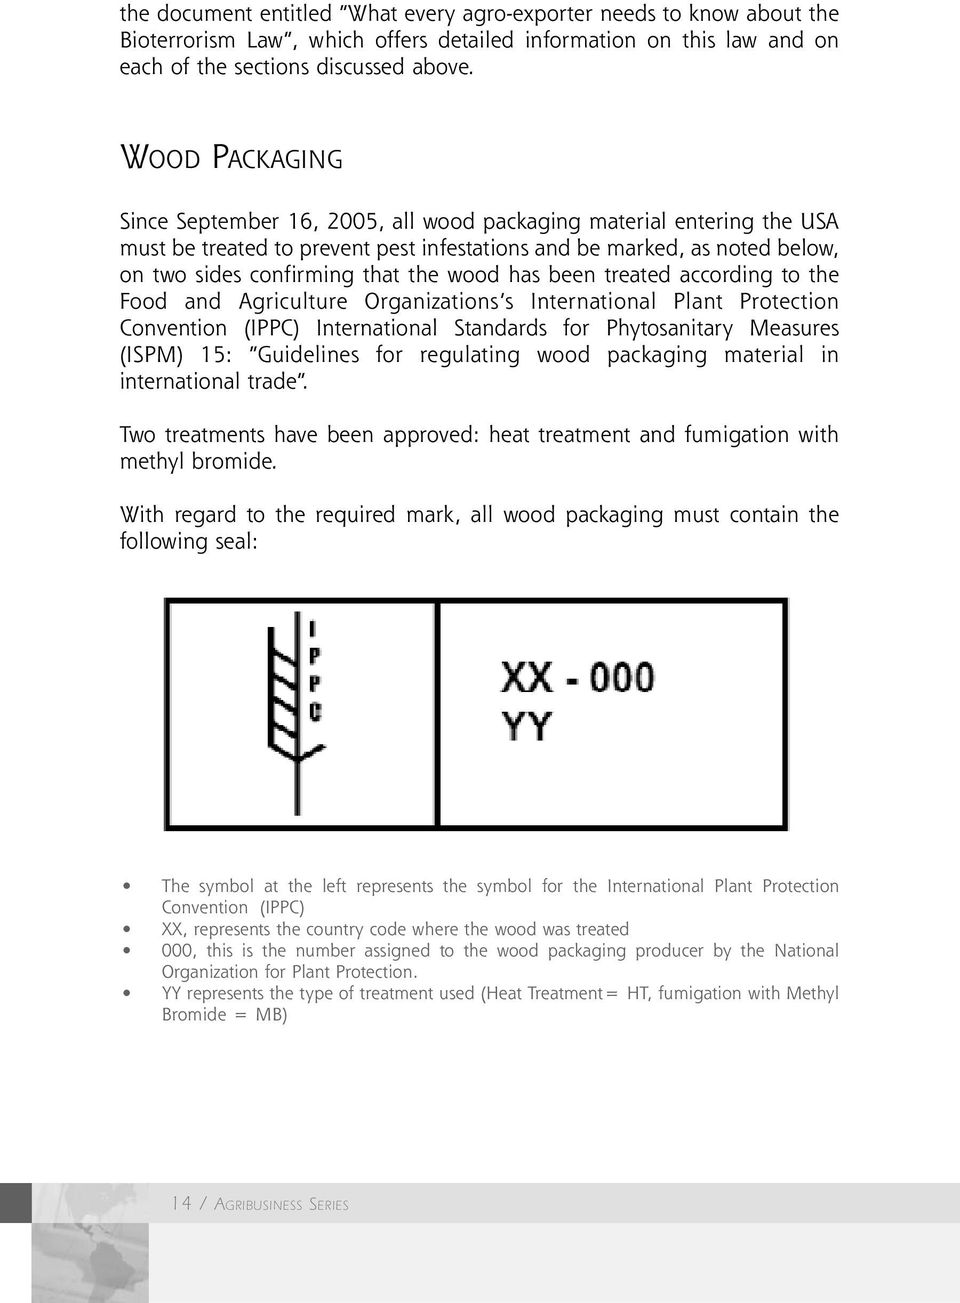 has been treated according to the Food and Agriculture Organizations s International Plant Protection Convention (IPPC) International Standards for Phytosanitary Measures (ISPM) 15: Guidelines for